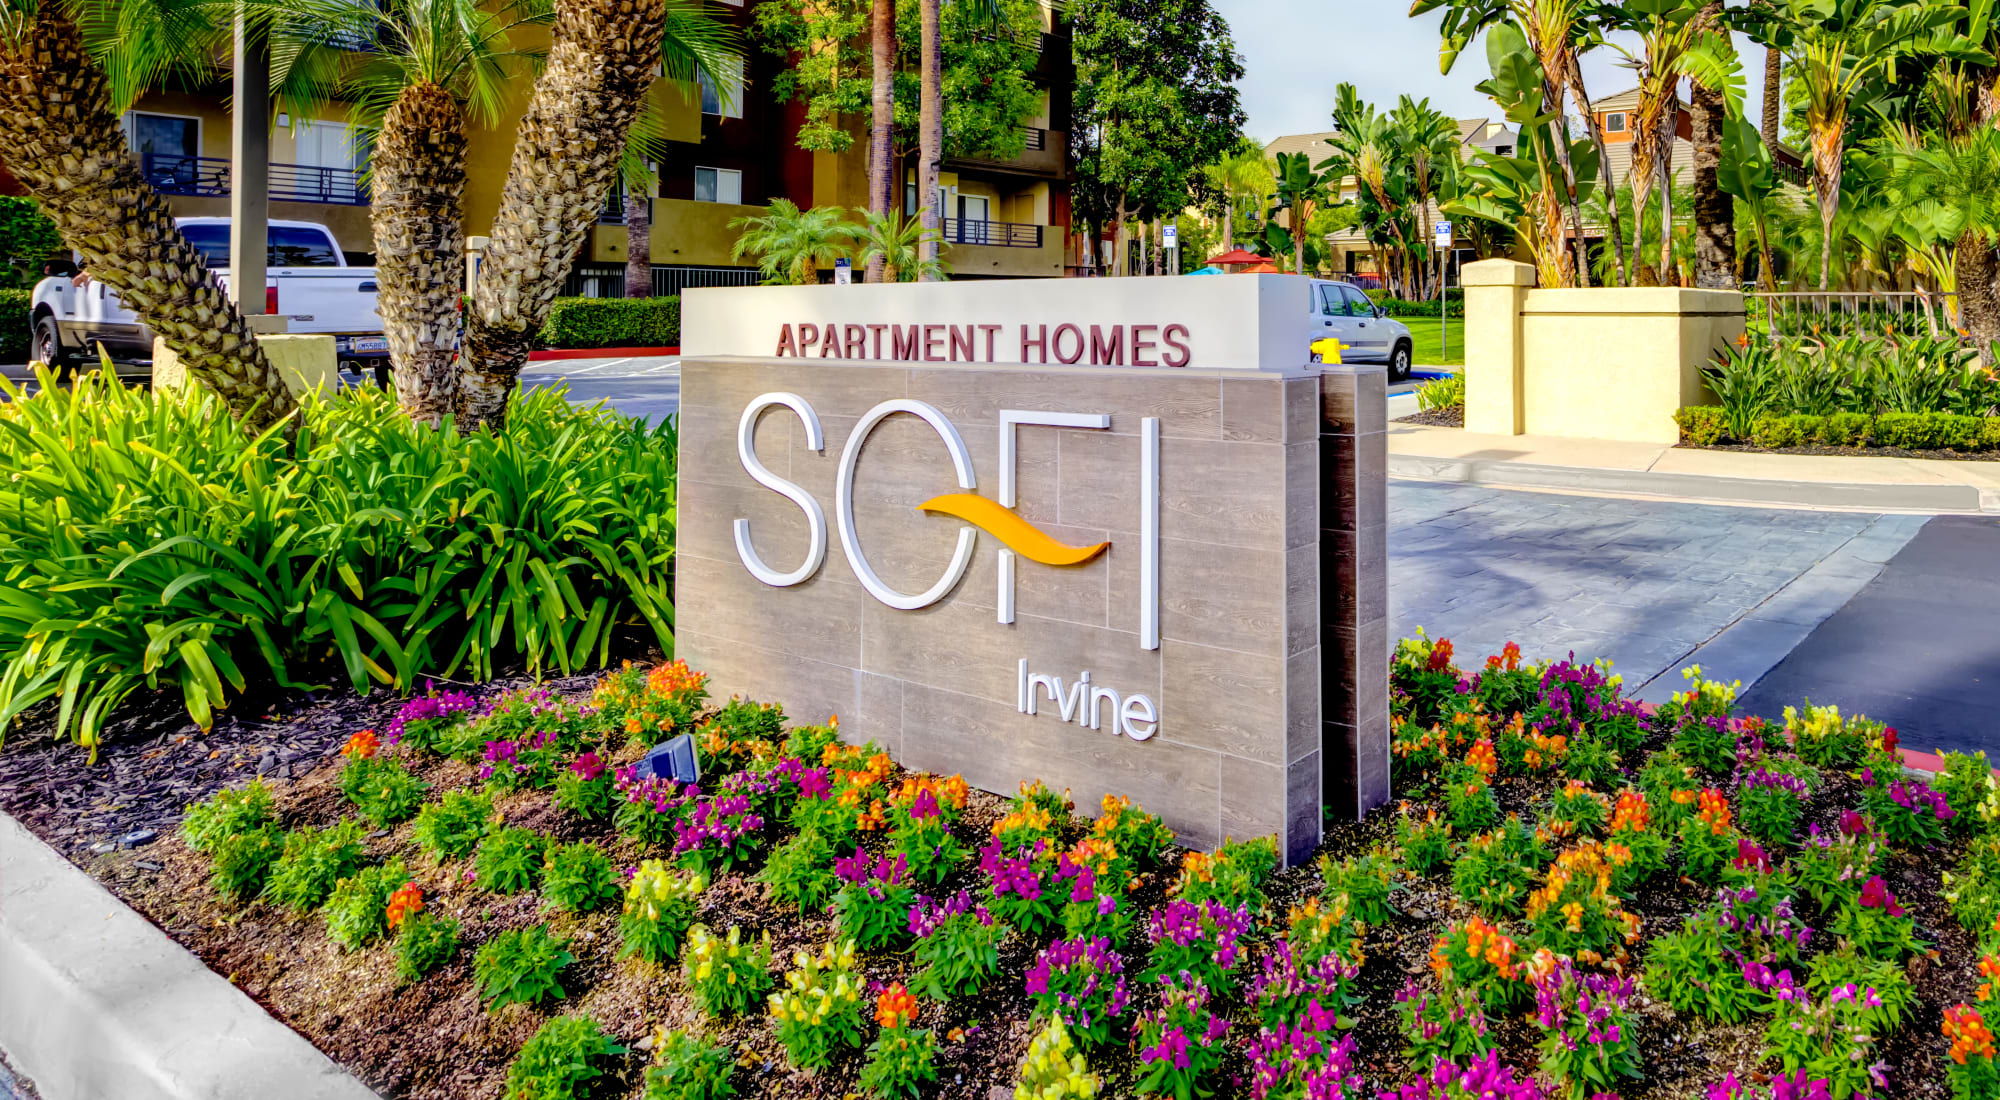 Photo gallery at Sofi Irvine in Irvine, California